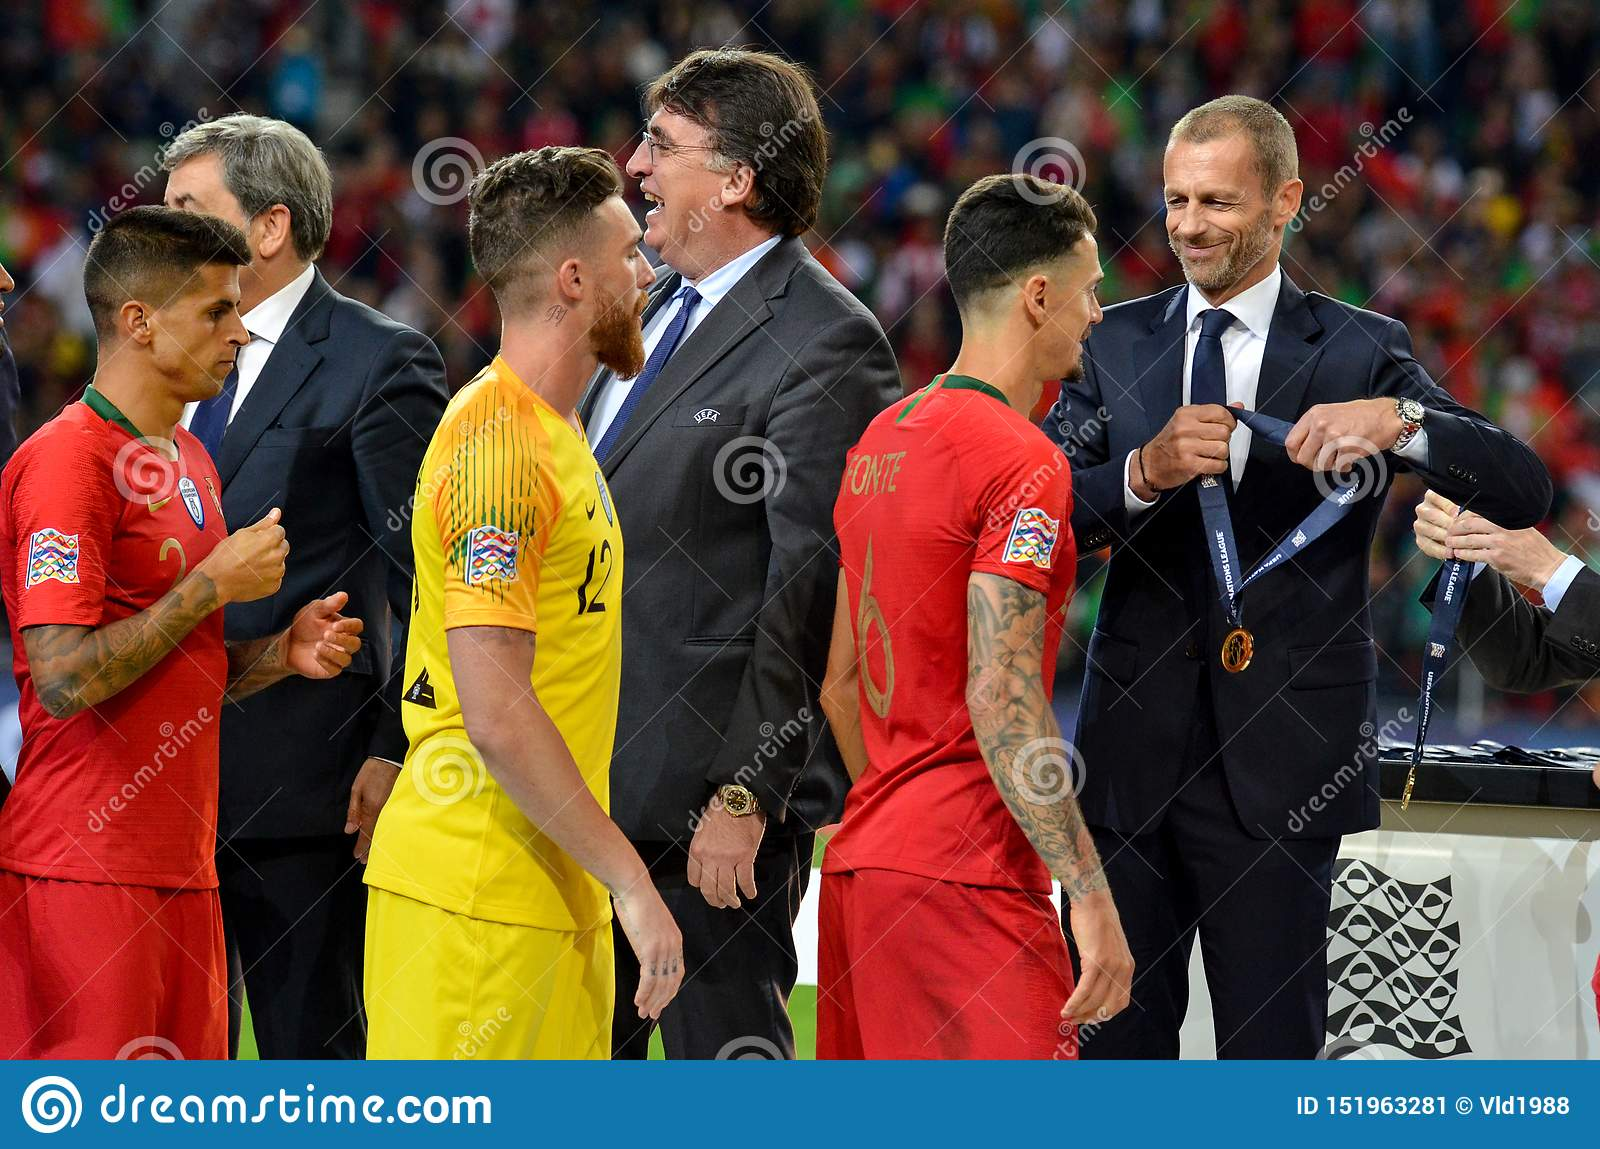 Porto Portuglal June 09 2019 Portugal National Team Receive Gold Medals During The Uefa Nations League Finals Match Between Editorial Photo Image Of Ball Field 151963281